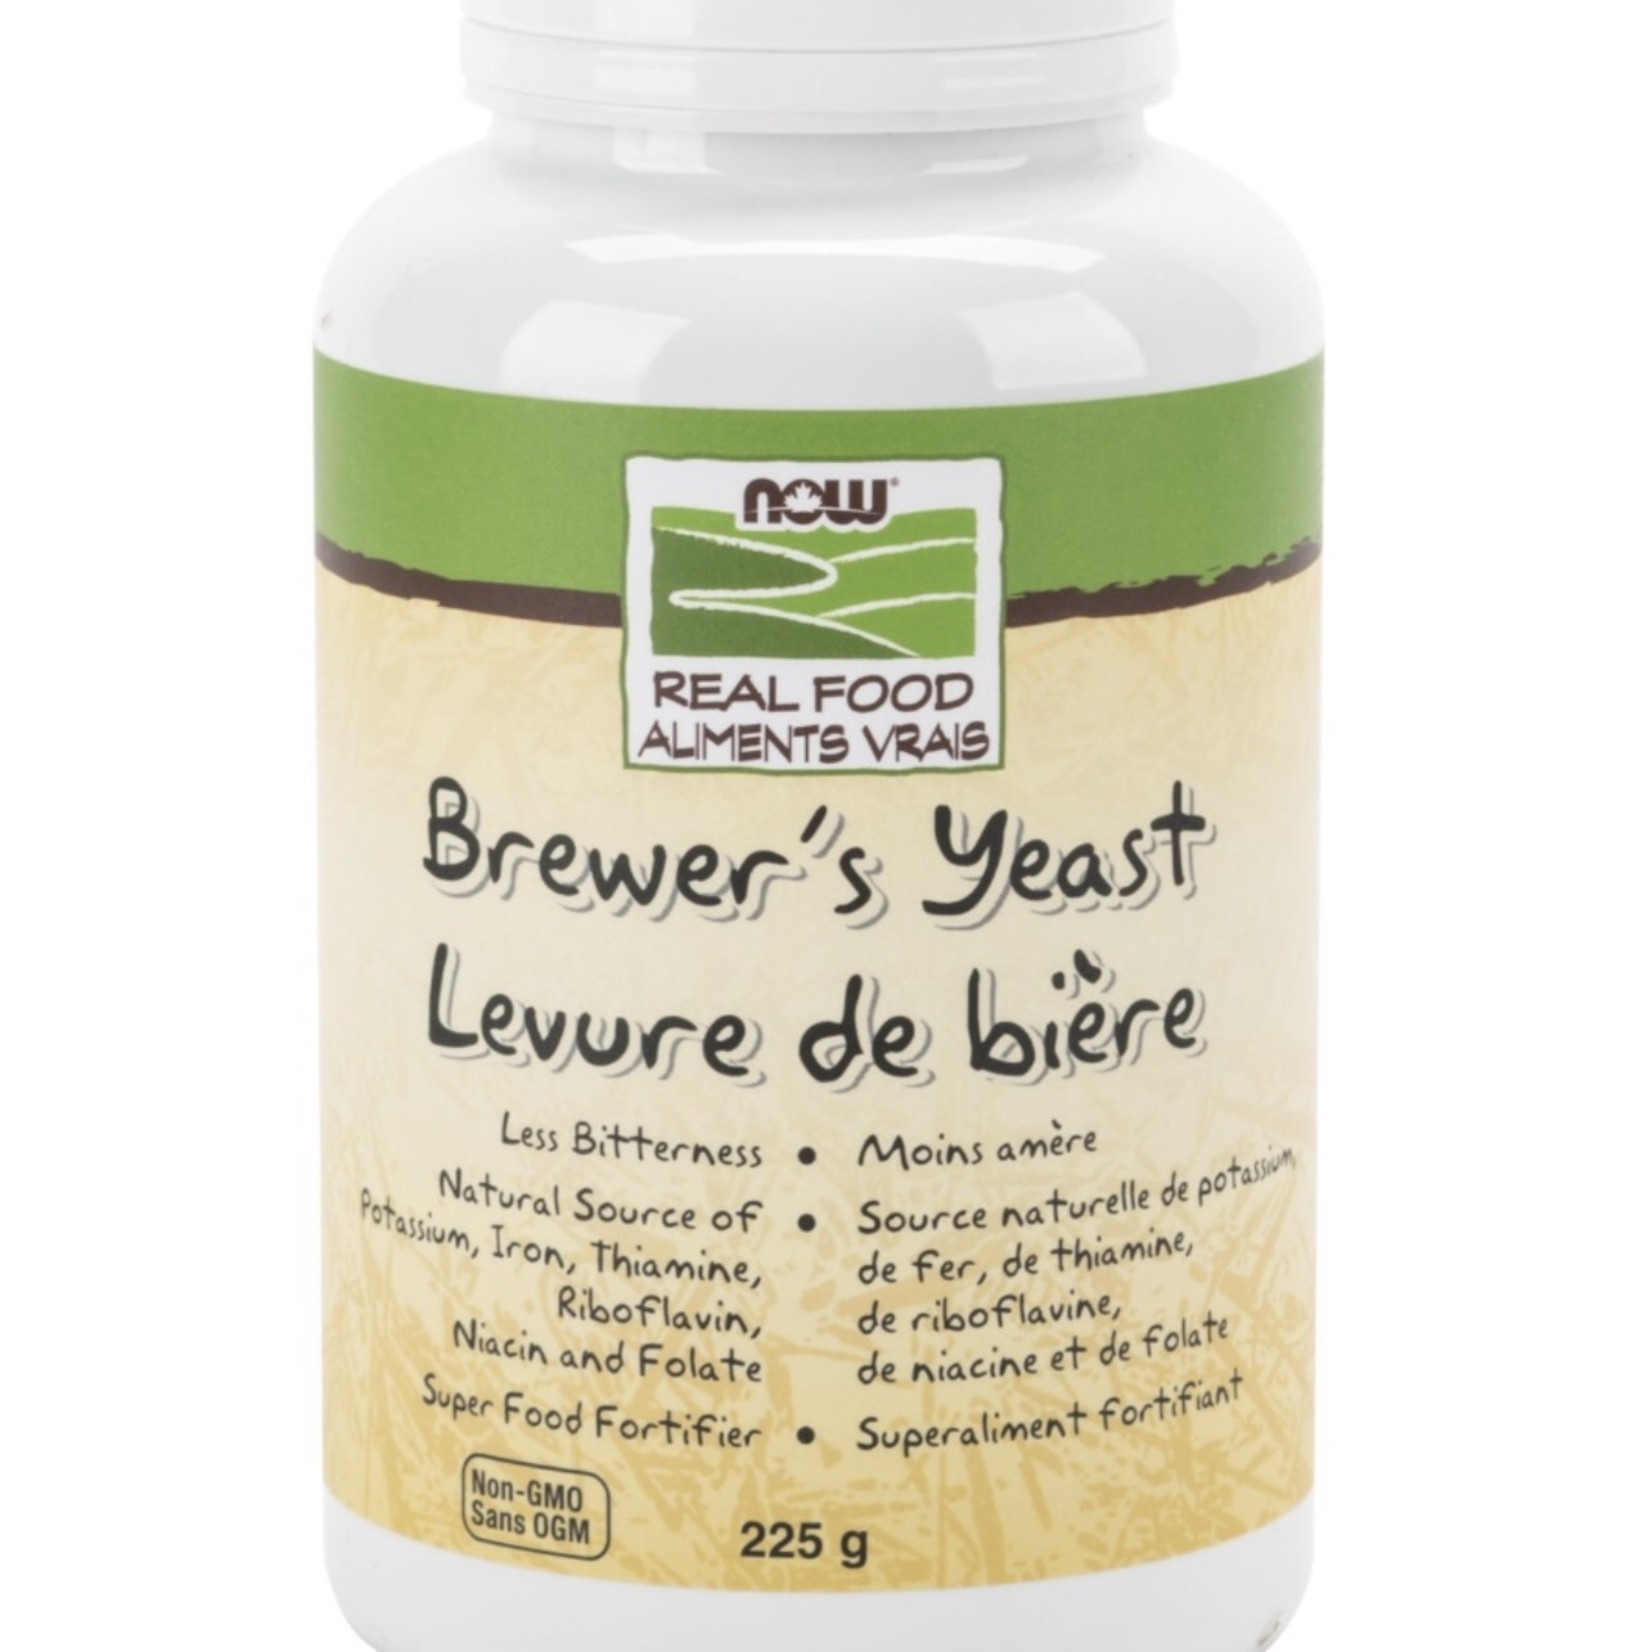 Now Now Brewer's Yeast 225g